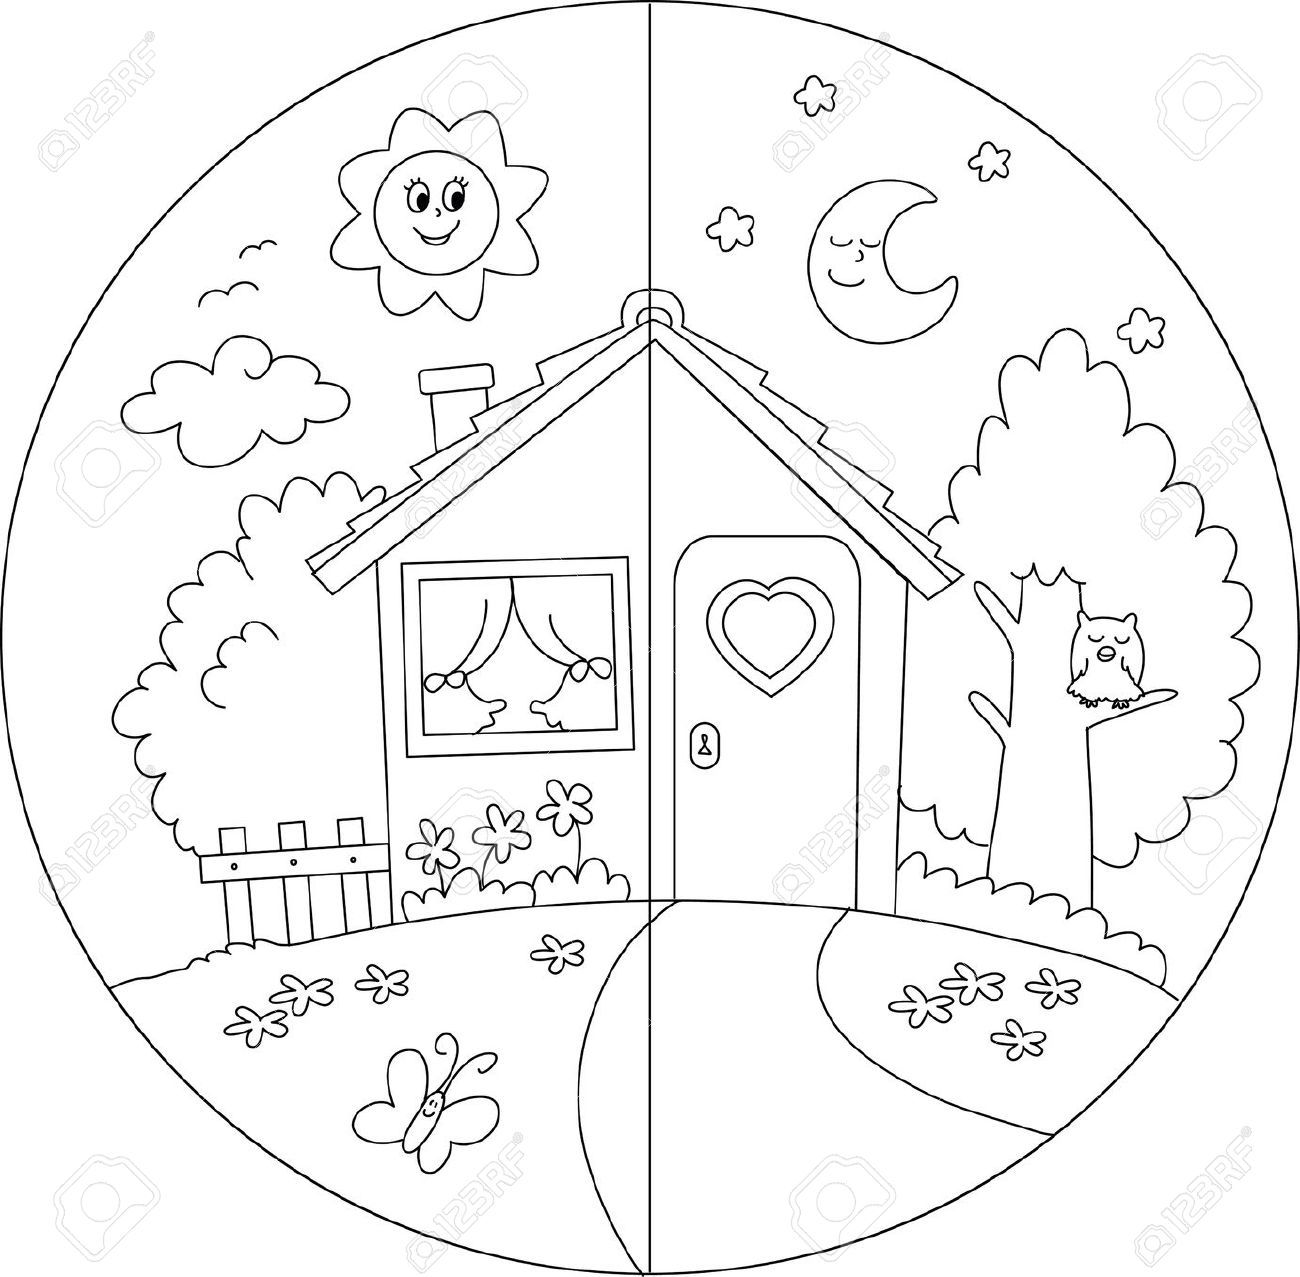 Night And Day Colouring Sheets Google Search Coloring Pages